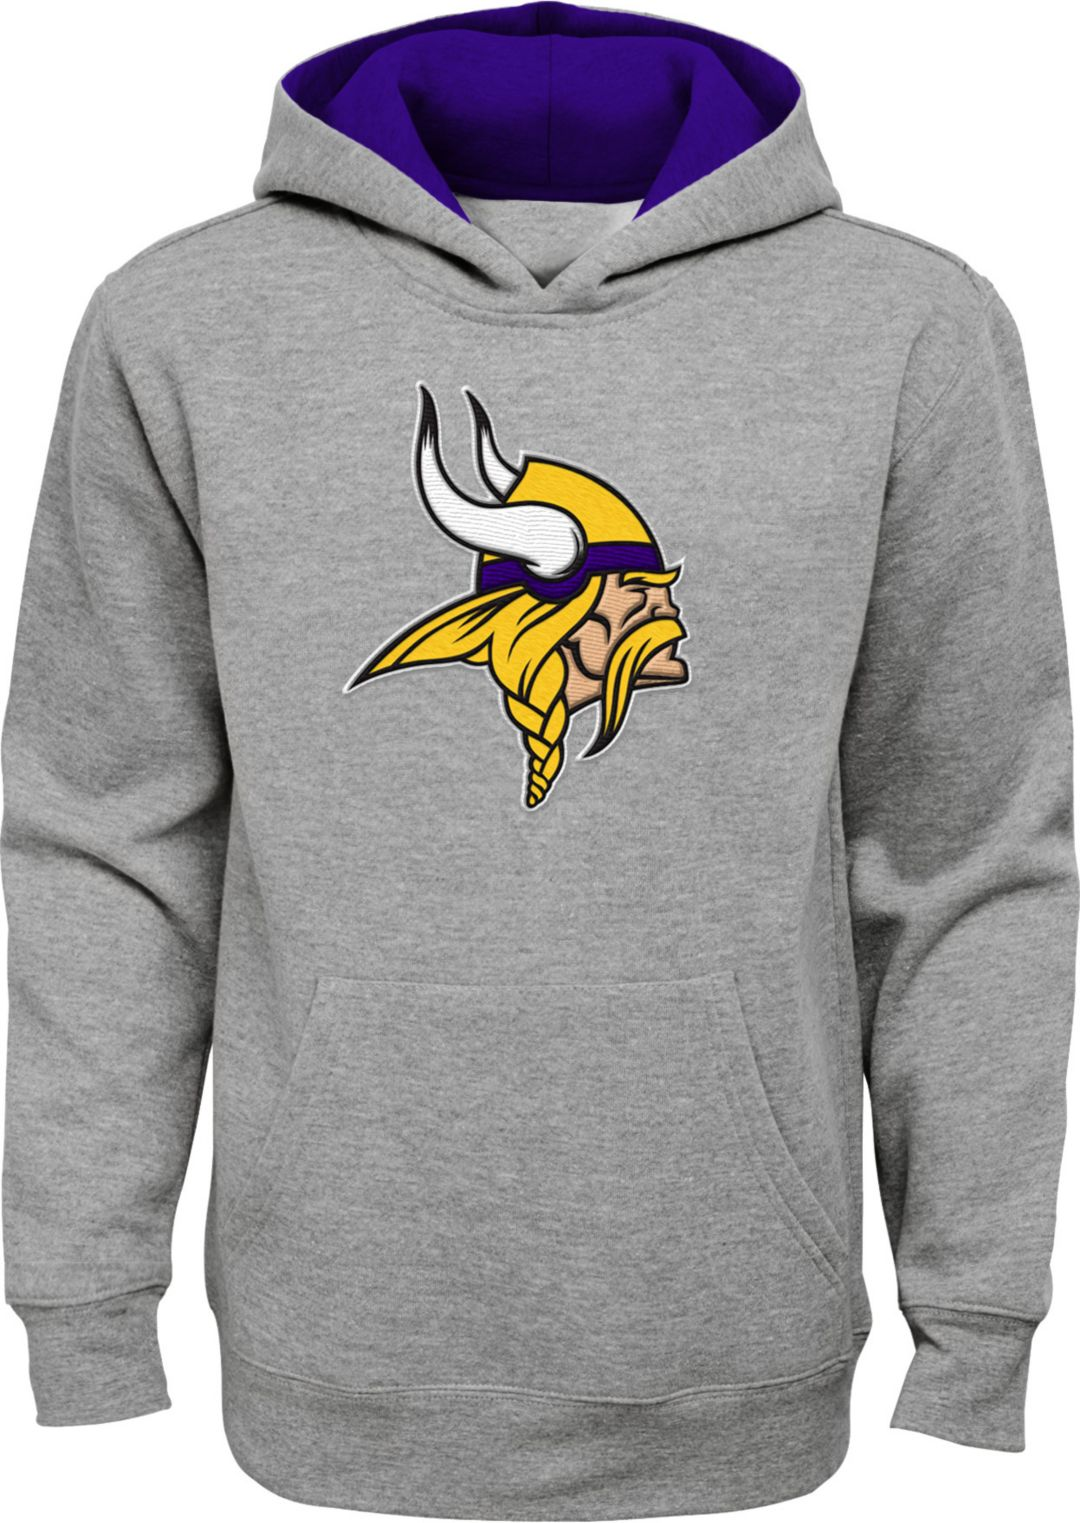 innovative design 83250 29f77 NFL Team Apparel Youth Minnesota Vikings Prime Grey Pullover Hoodie